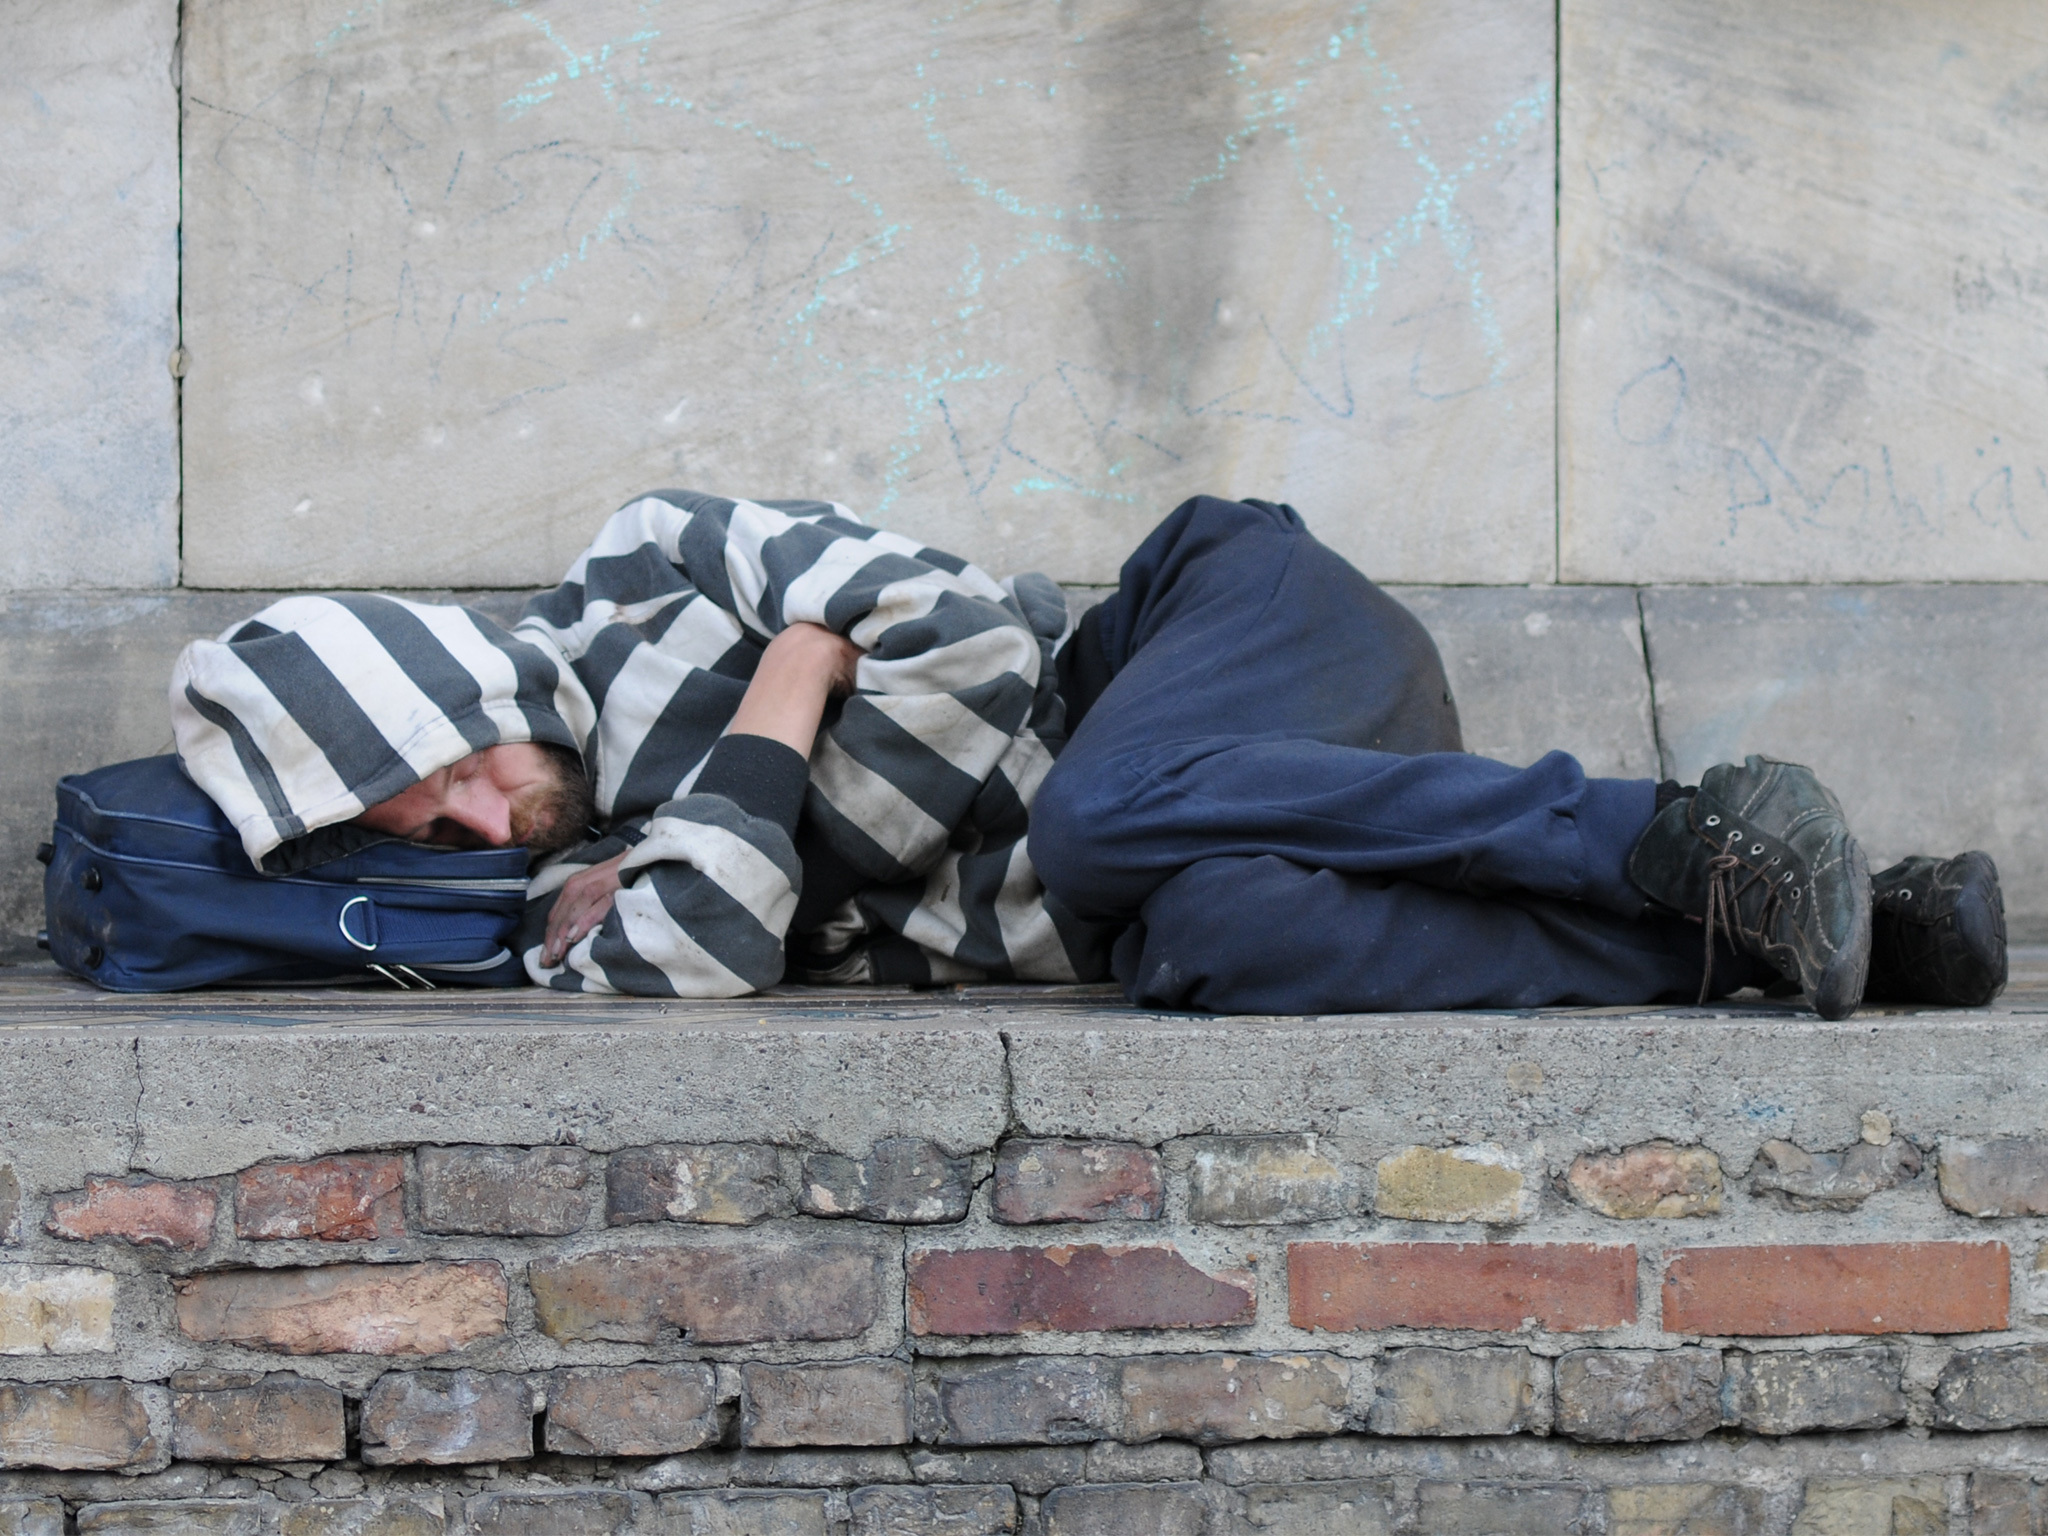 Relief is on the horizon for Melbourne's homeless with a promised $850K